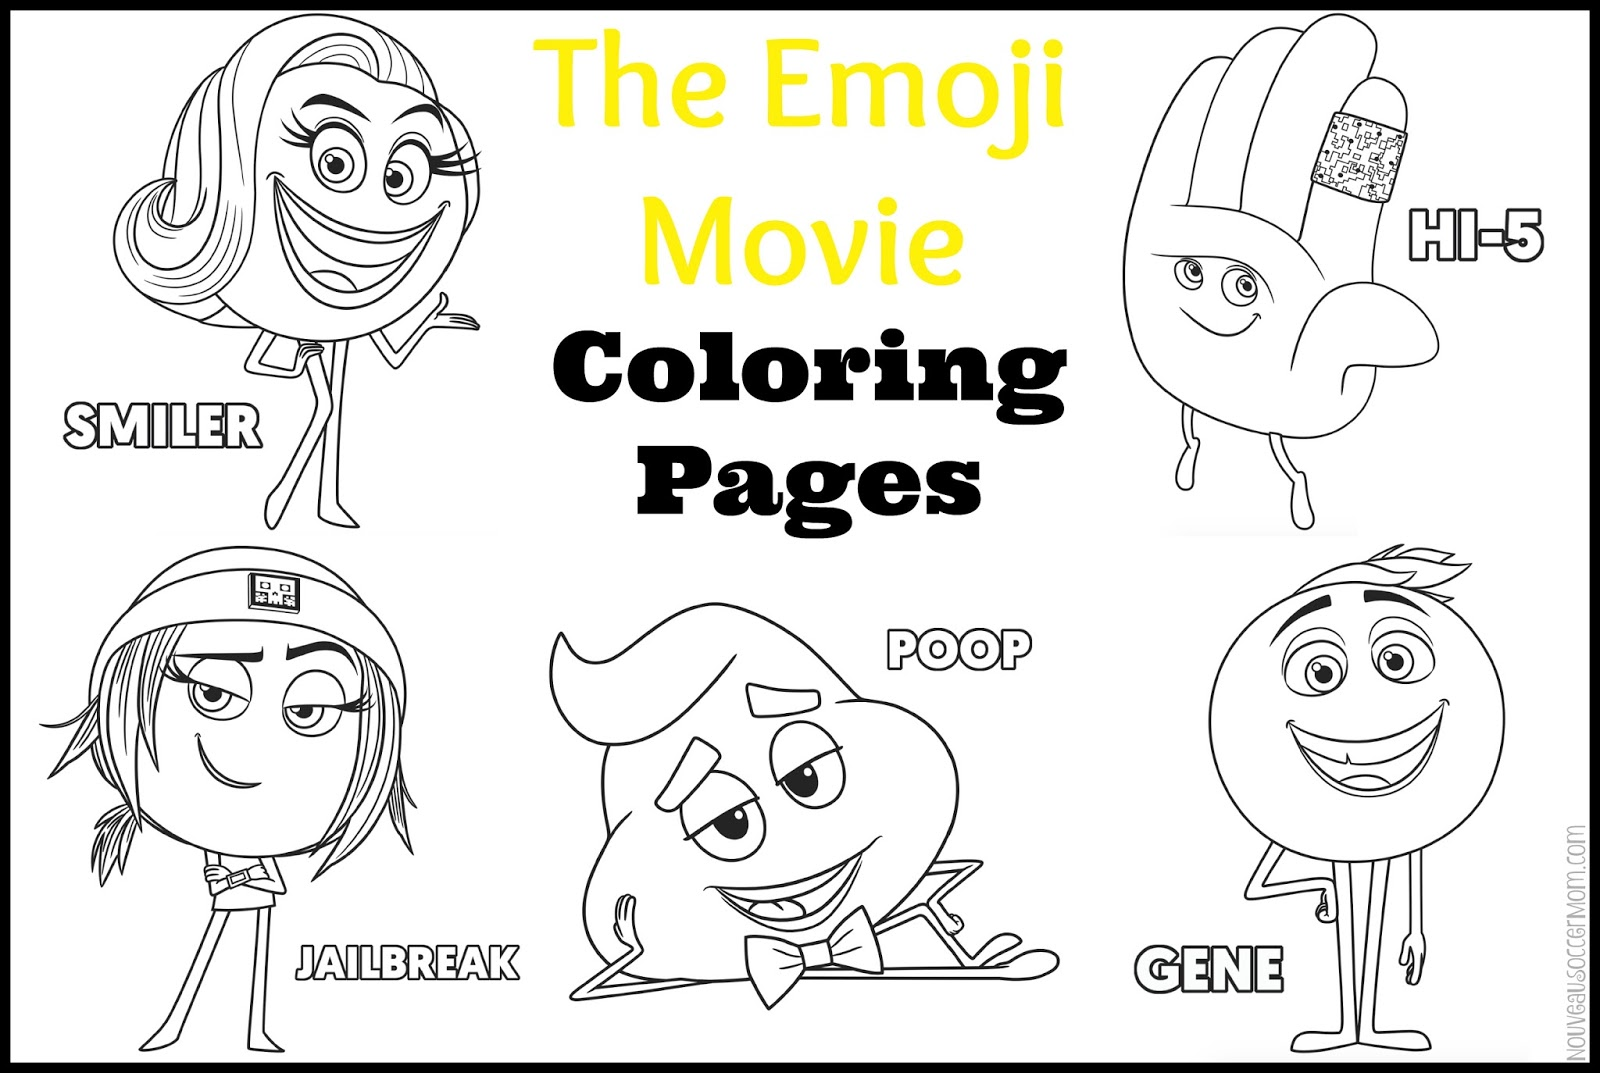 Emoji Movie Coloring Pages Printables Multiple Characters